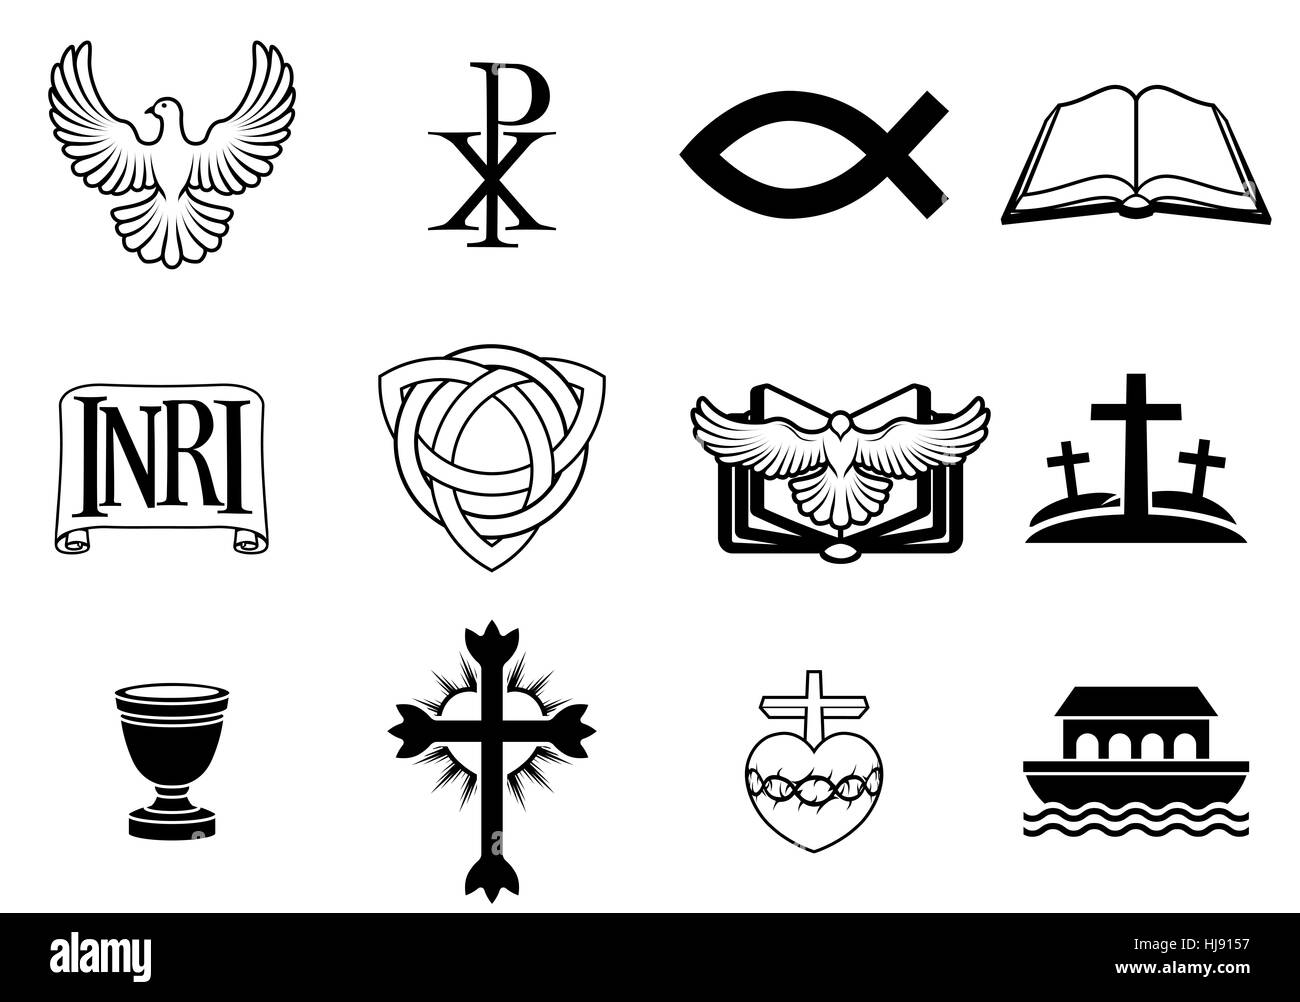 A set of Christian icons and symbols, including dove, Chi Ro, fish symbol, bible, INRI sign, trinity christogram, - Stock Image